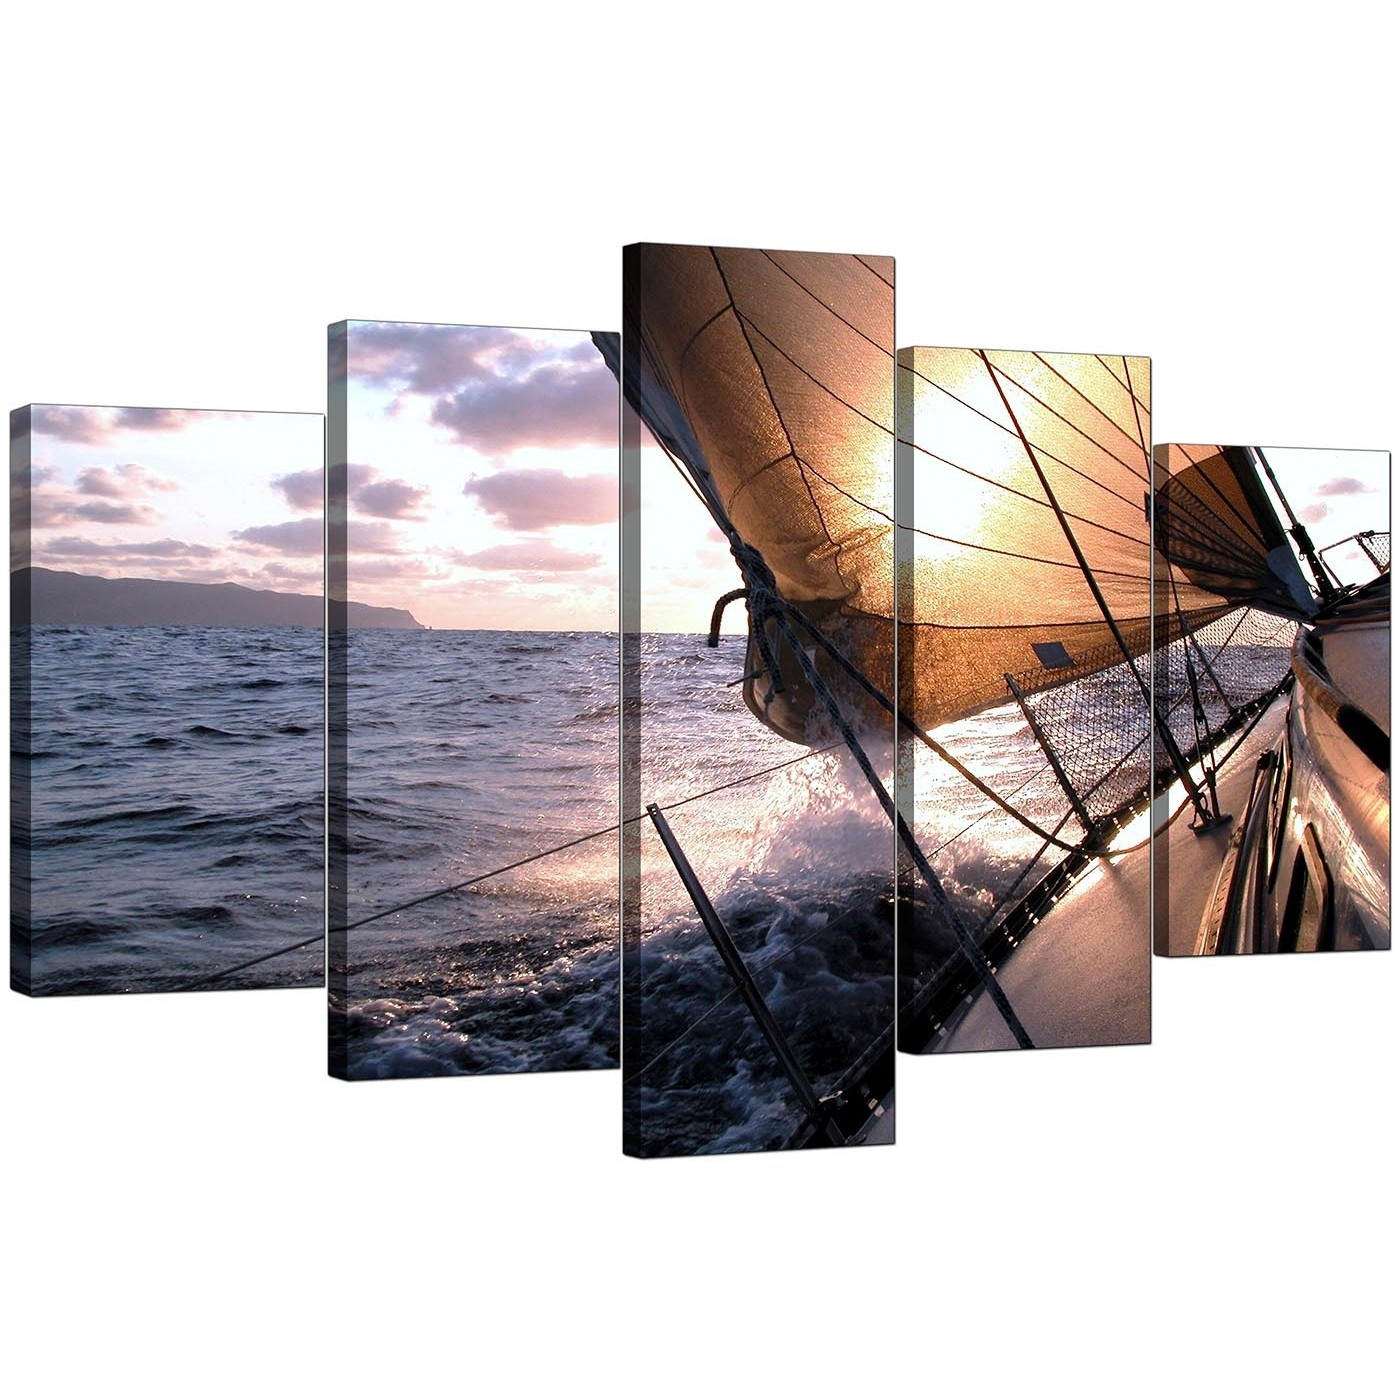 Boat Canvas Prints Uk For Your Living Room – 5 Piece Pertaining To 5 Panel Wall Art (View 9 of 20)